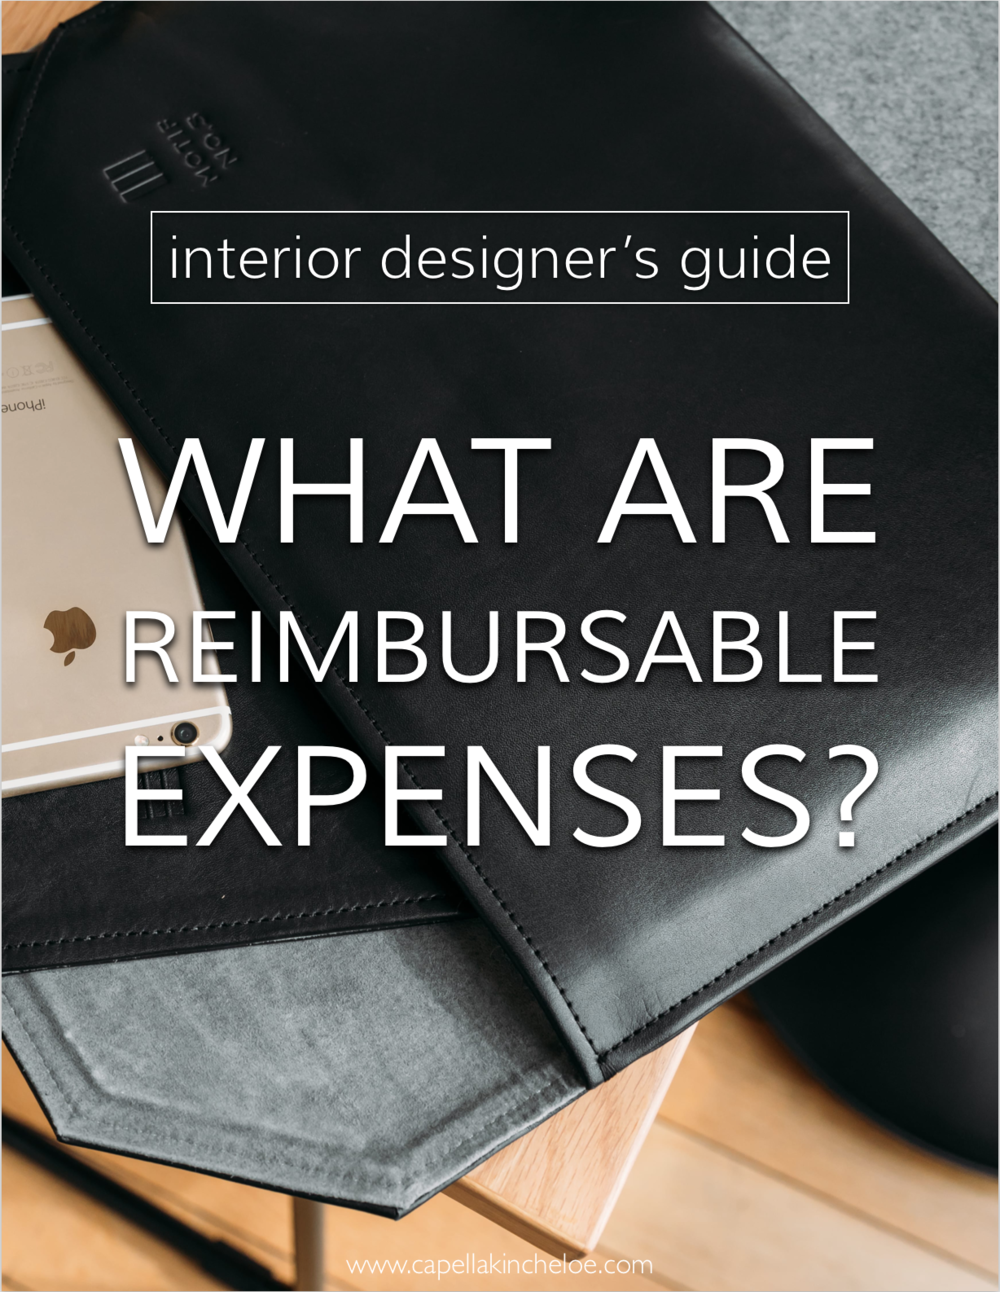 Are you properly billing your clients for reimbursables?  What are Reimbursable expenses anyway?  #interiordesignbusiness #CKTRADESECRETS #REIMBURSABLE